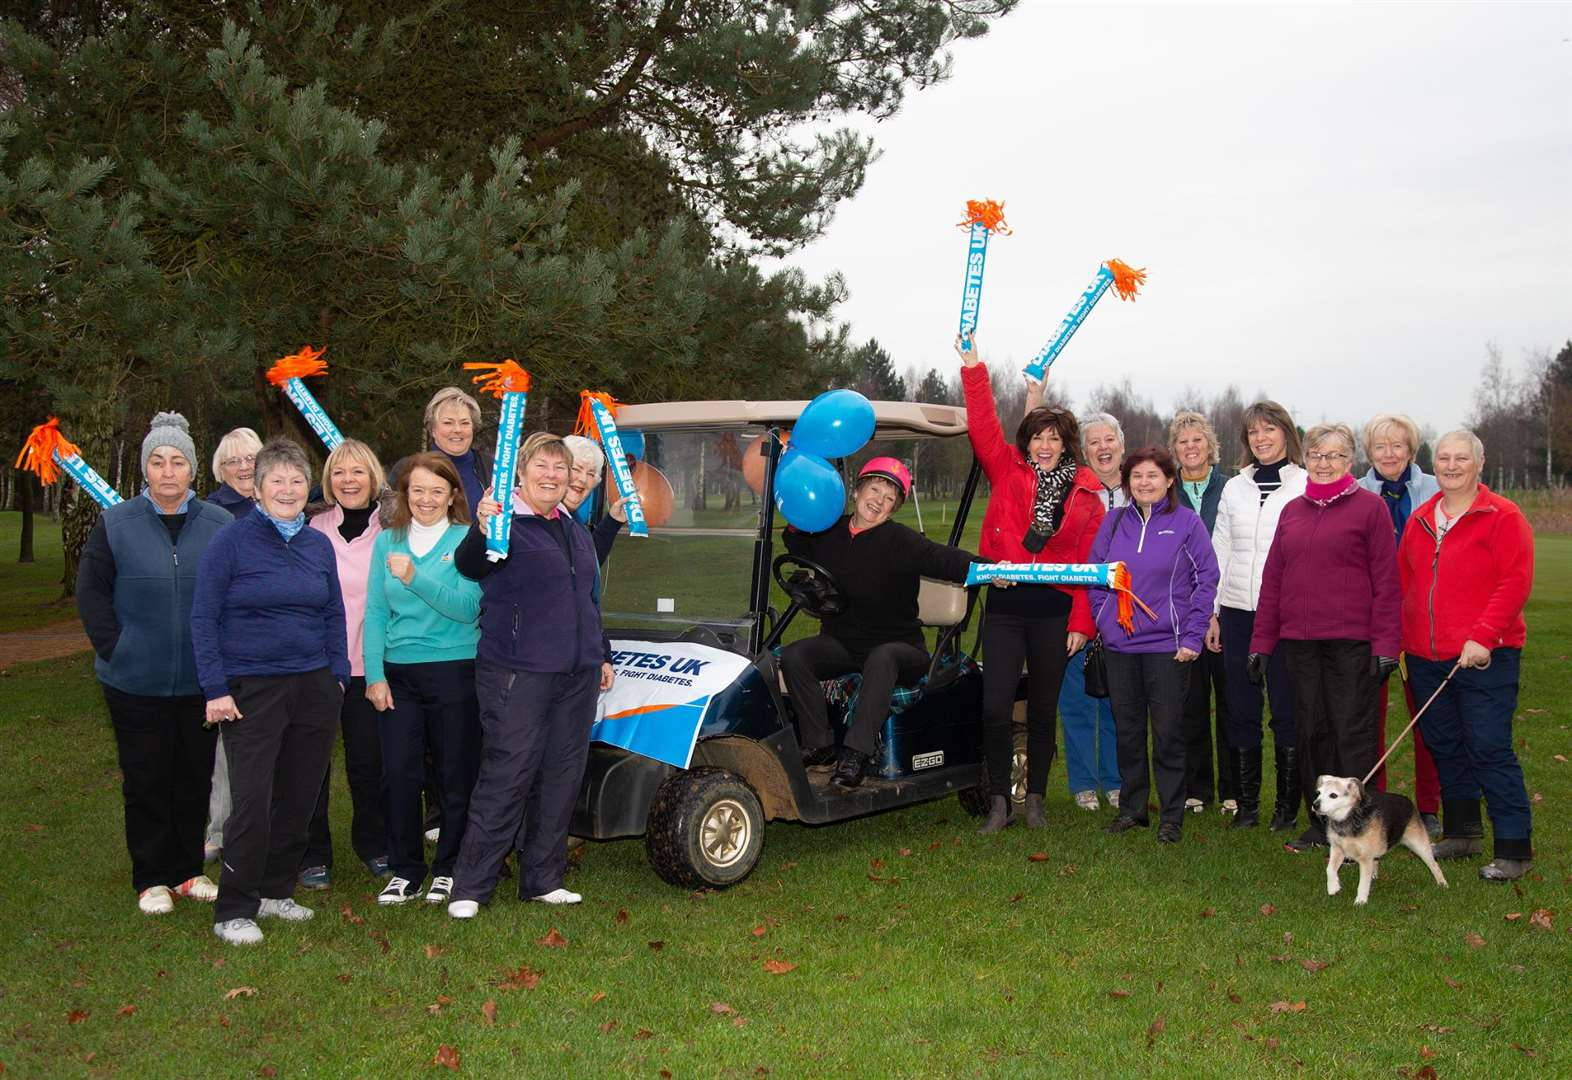 Tydd St Giles Golf Club 2019 ladies captain Liz starts with drive-in while celebrating her 60th birthday